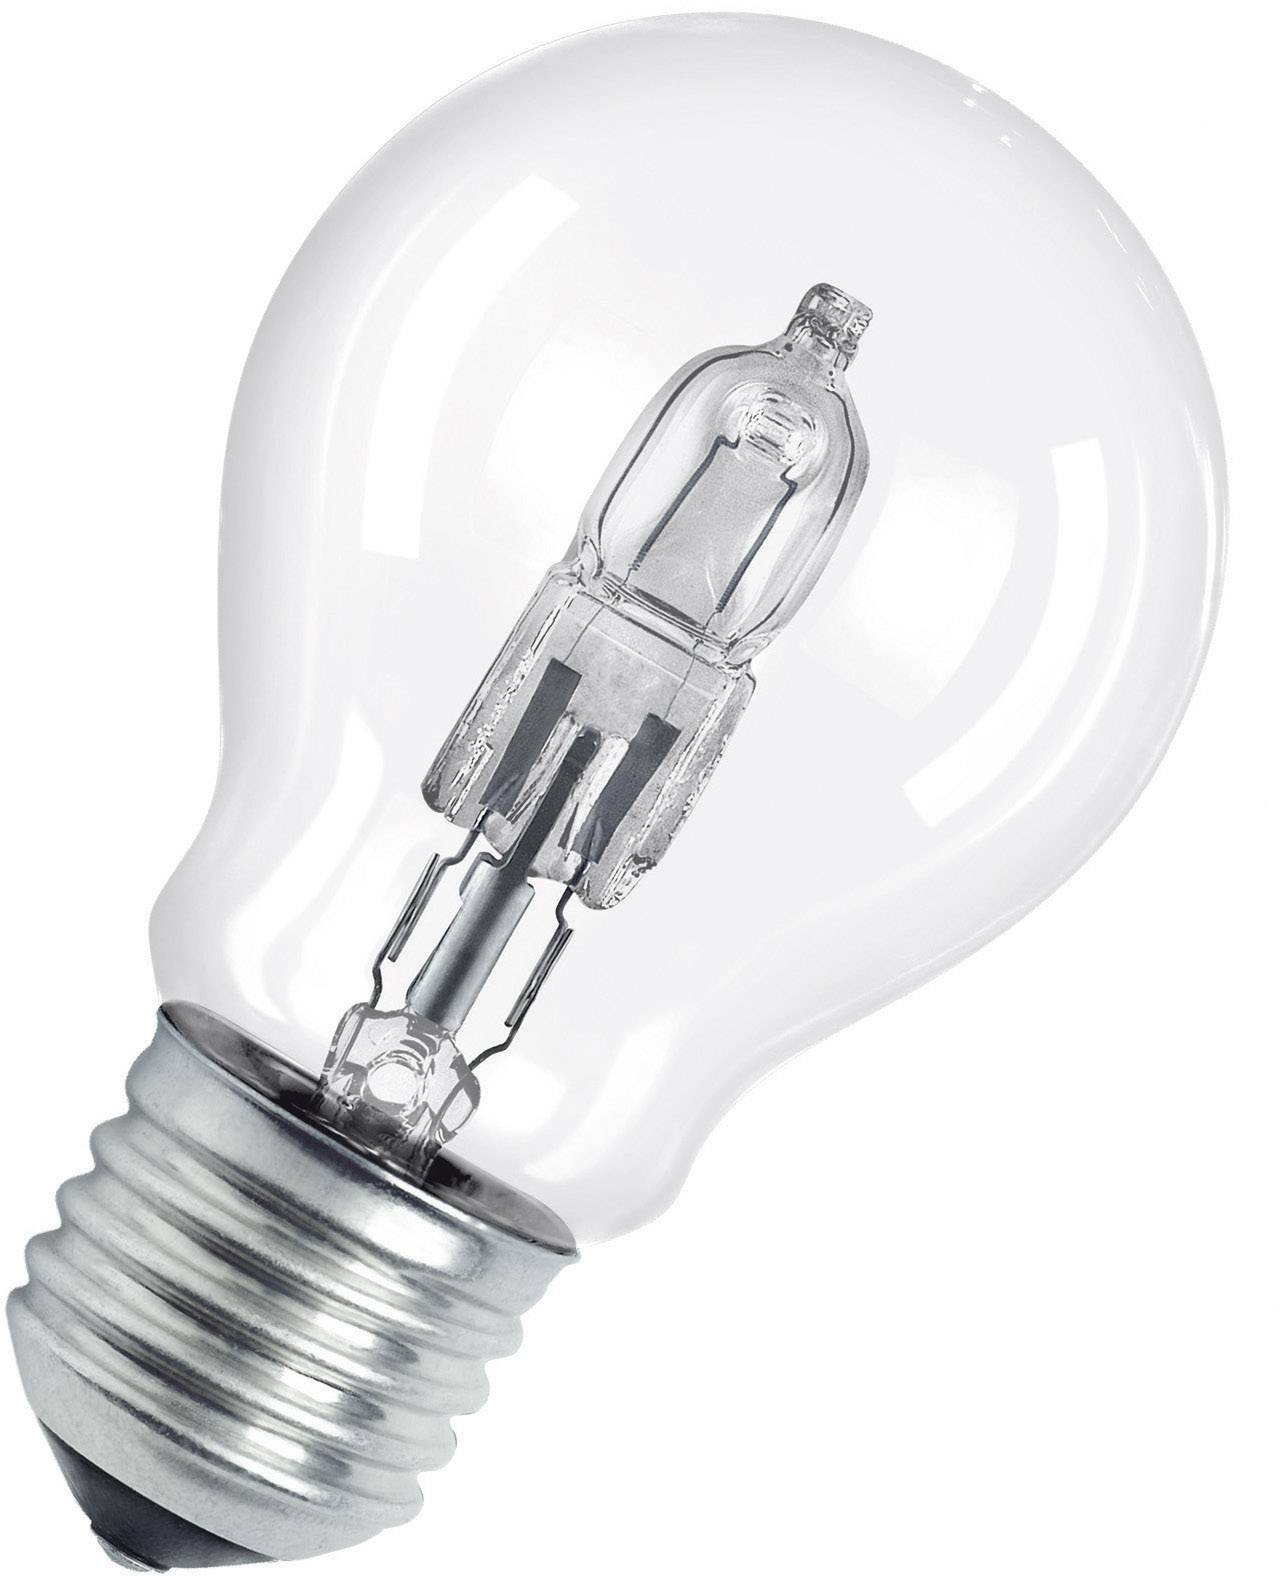 Eco-halogeen-lamp E27 46 W Peer Warm-wit Dimbaar OSRAM 1 stuks ...